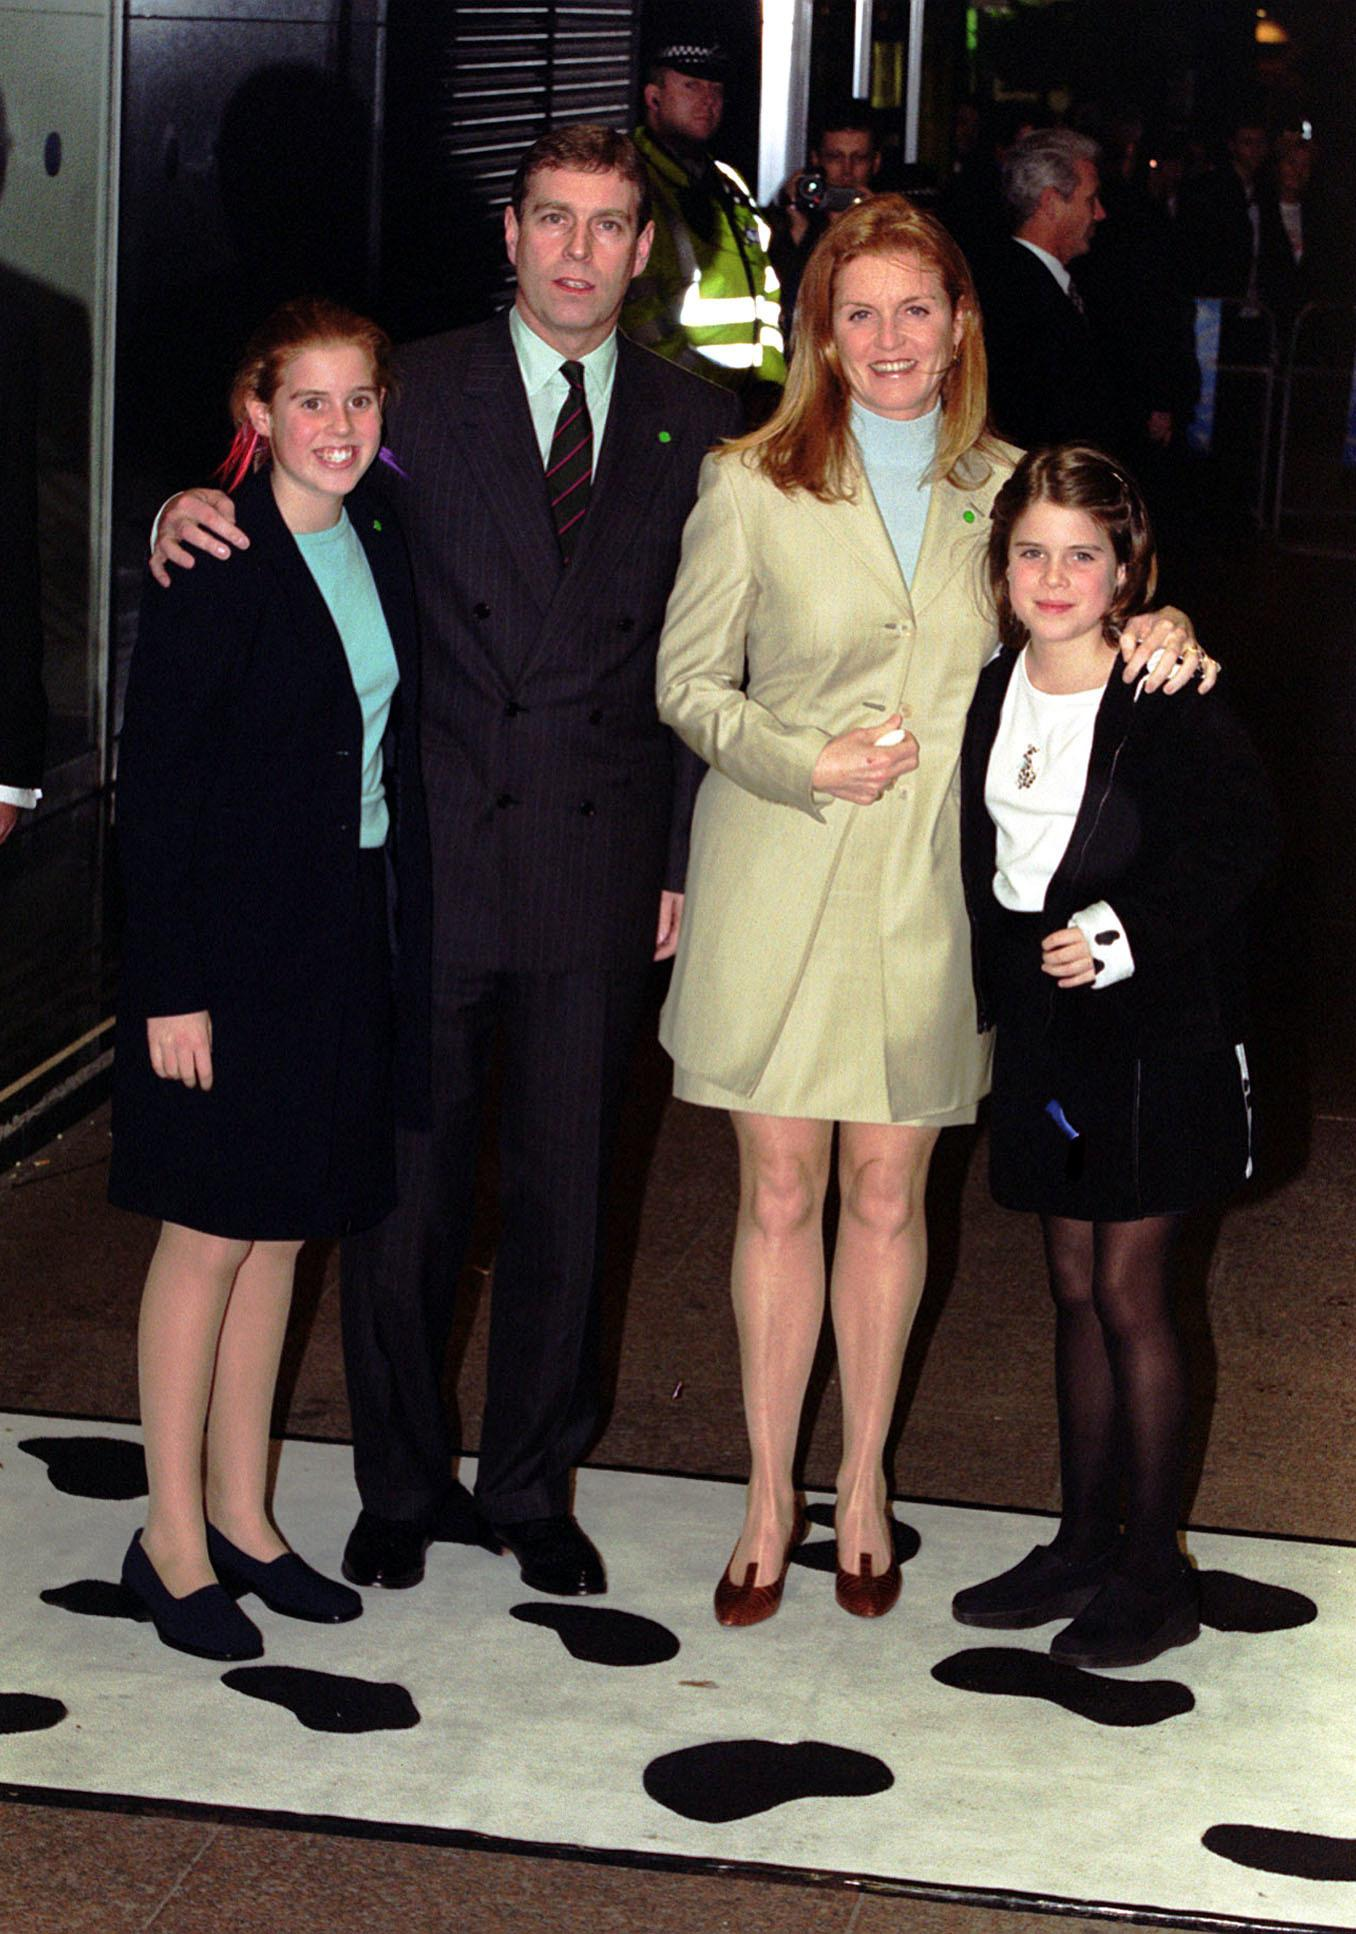 """The Duke and Duchess of York, with their two daughters Beatrice (L) and Eugenie, arriving for the European Premiere of """"102 Dalmations"""" at the Odeon cinema, in Leicester Square, London."""